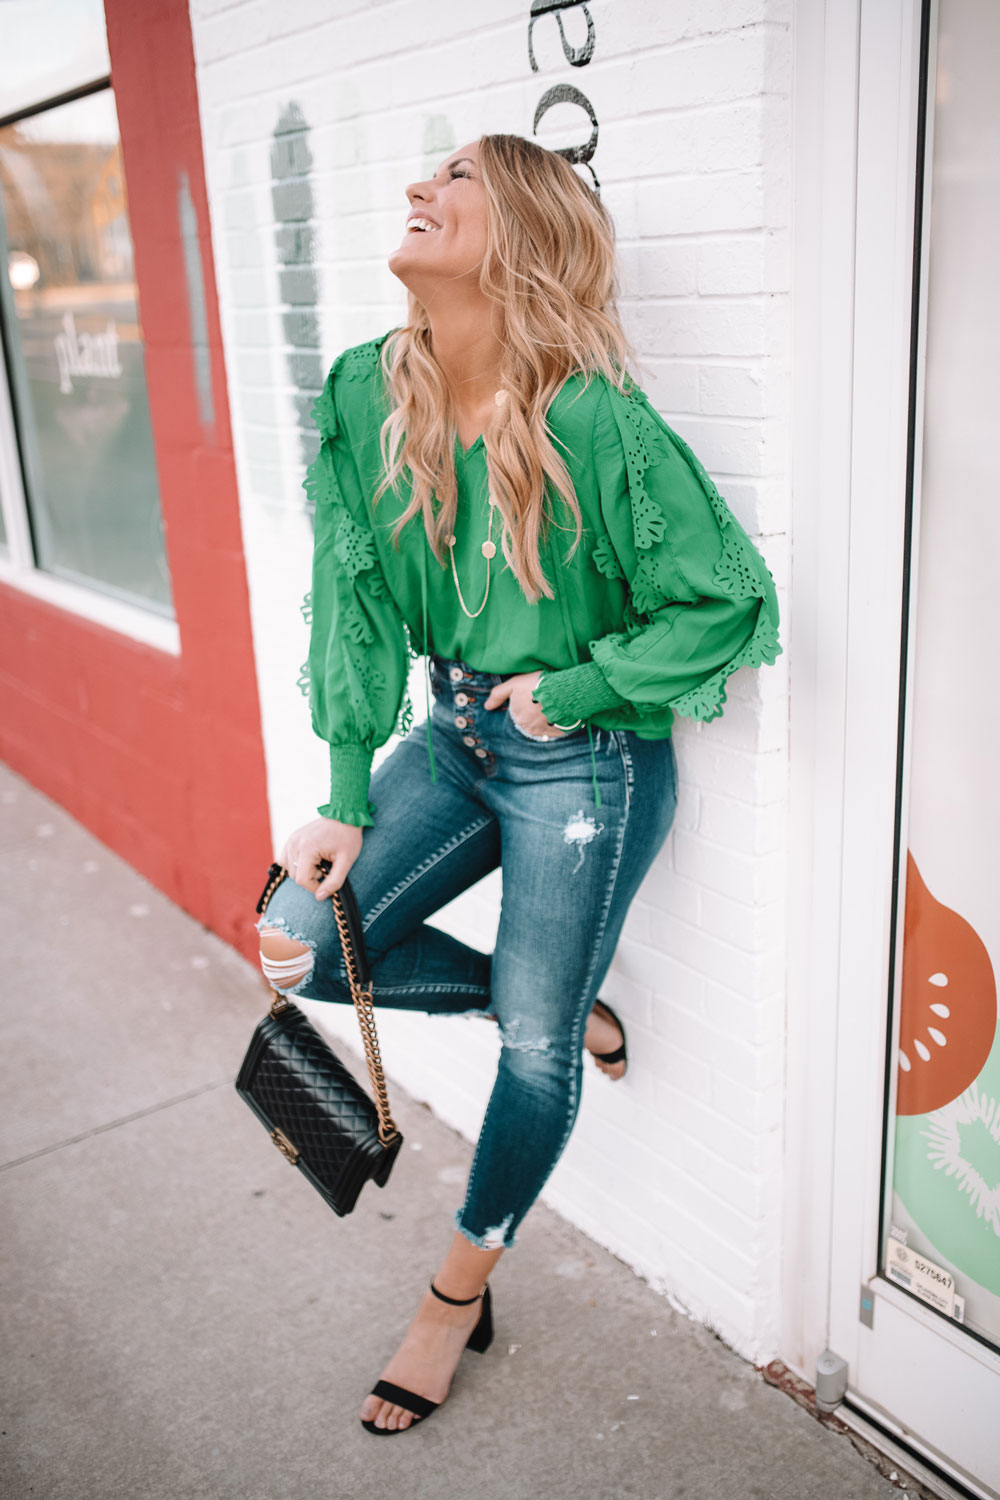 Blogger Amanda's OK shares how to pair green and gold